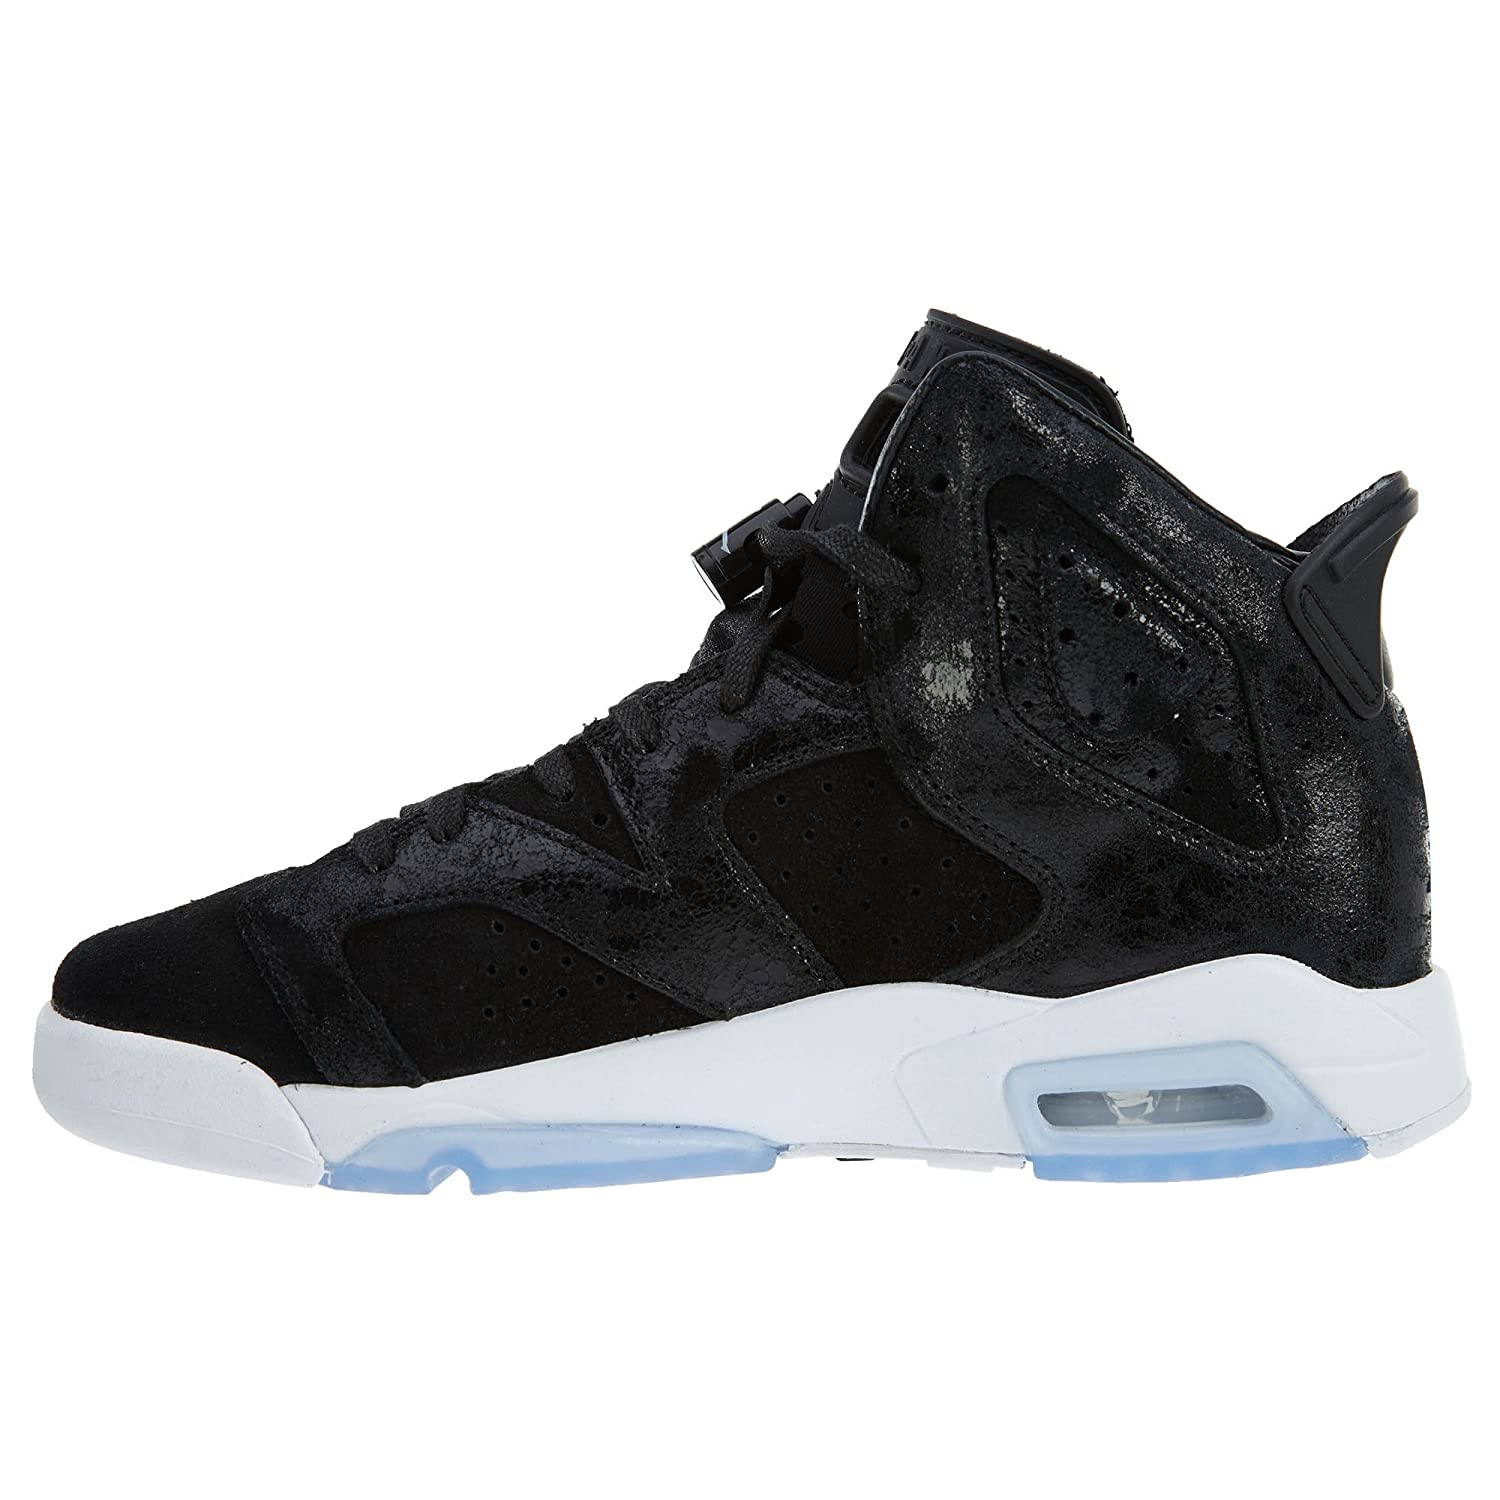 huge selection of 0173c fd77f Amazon.com  Jordan Big Kids Girls  Air Jordan 6 Retro Premium Heiress  Collection GS black black-white-gym red Size 9.0 US  Jordan  Shoes